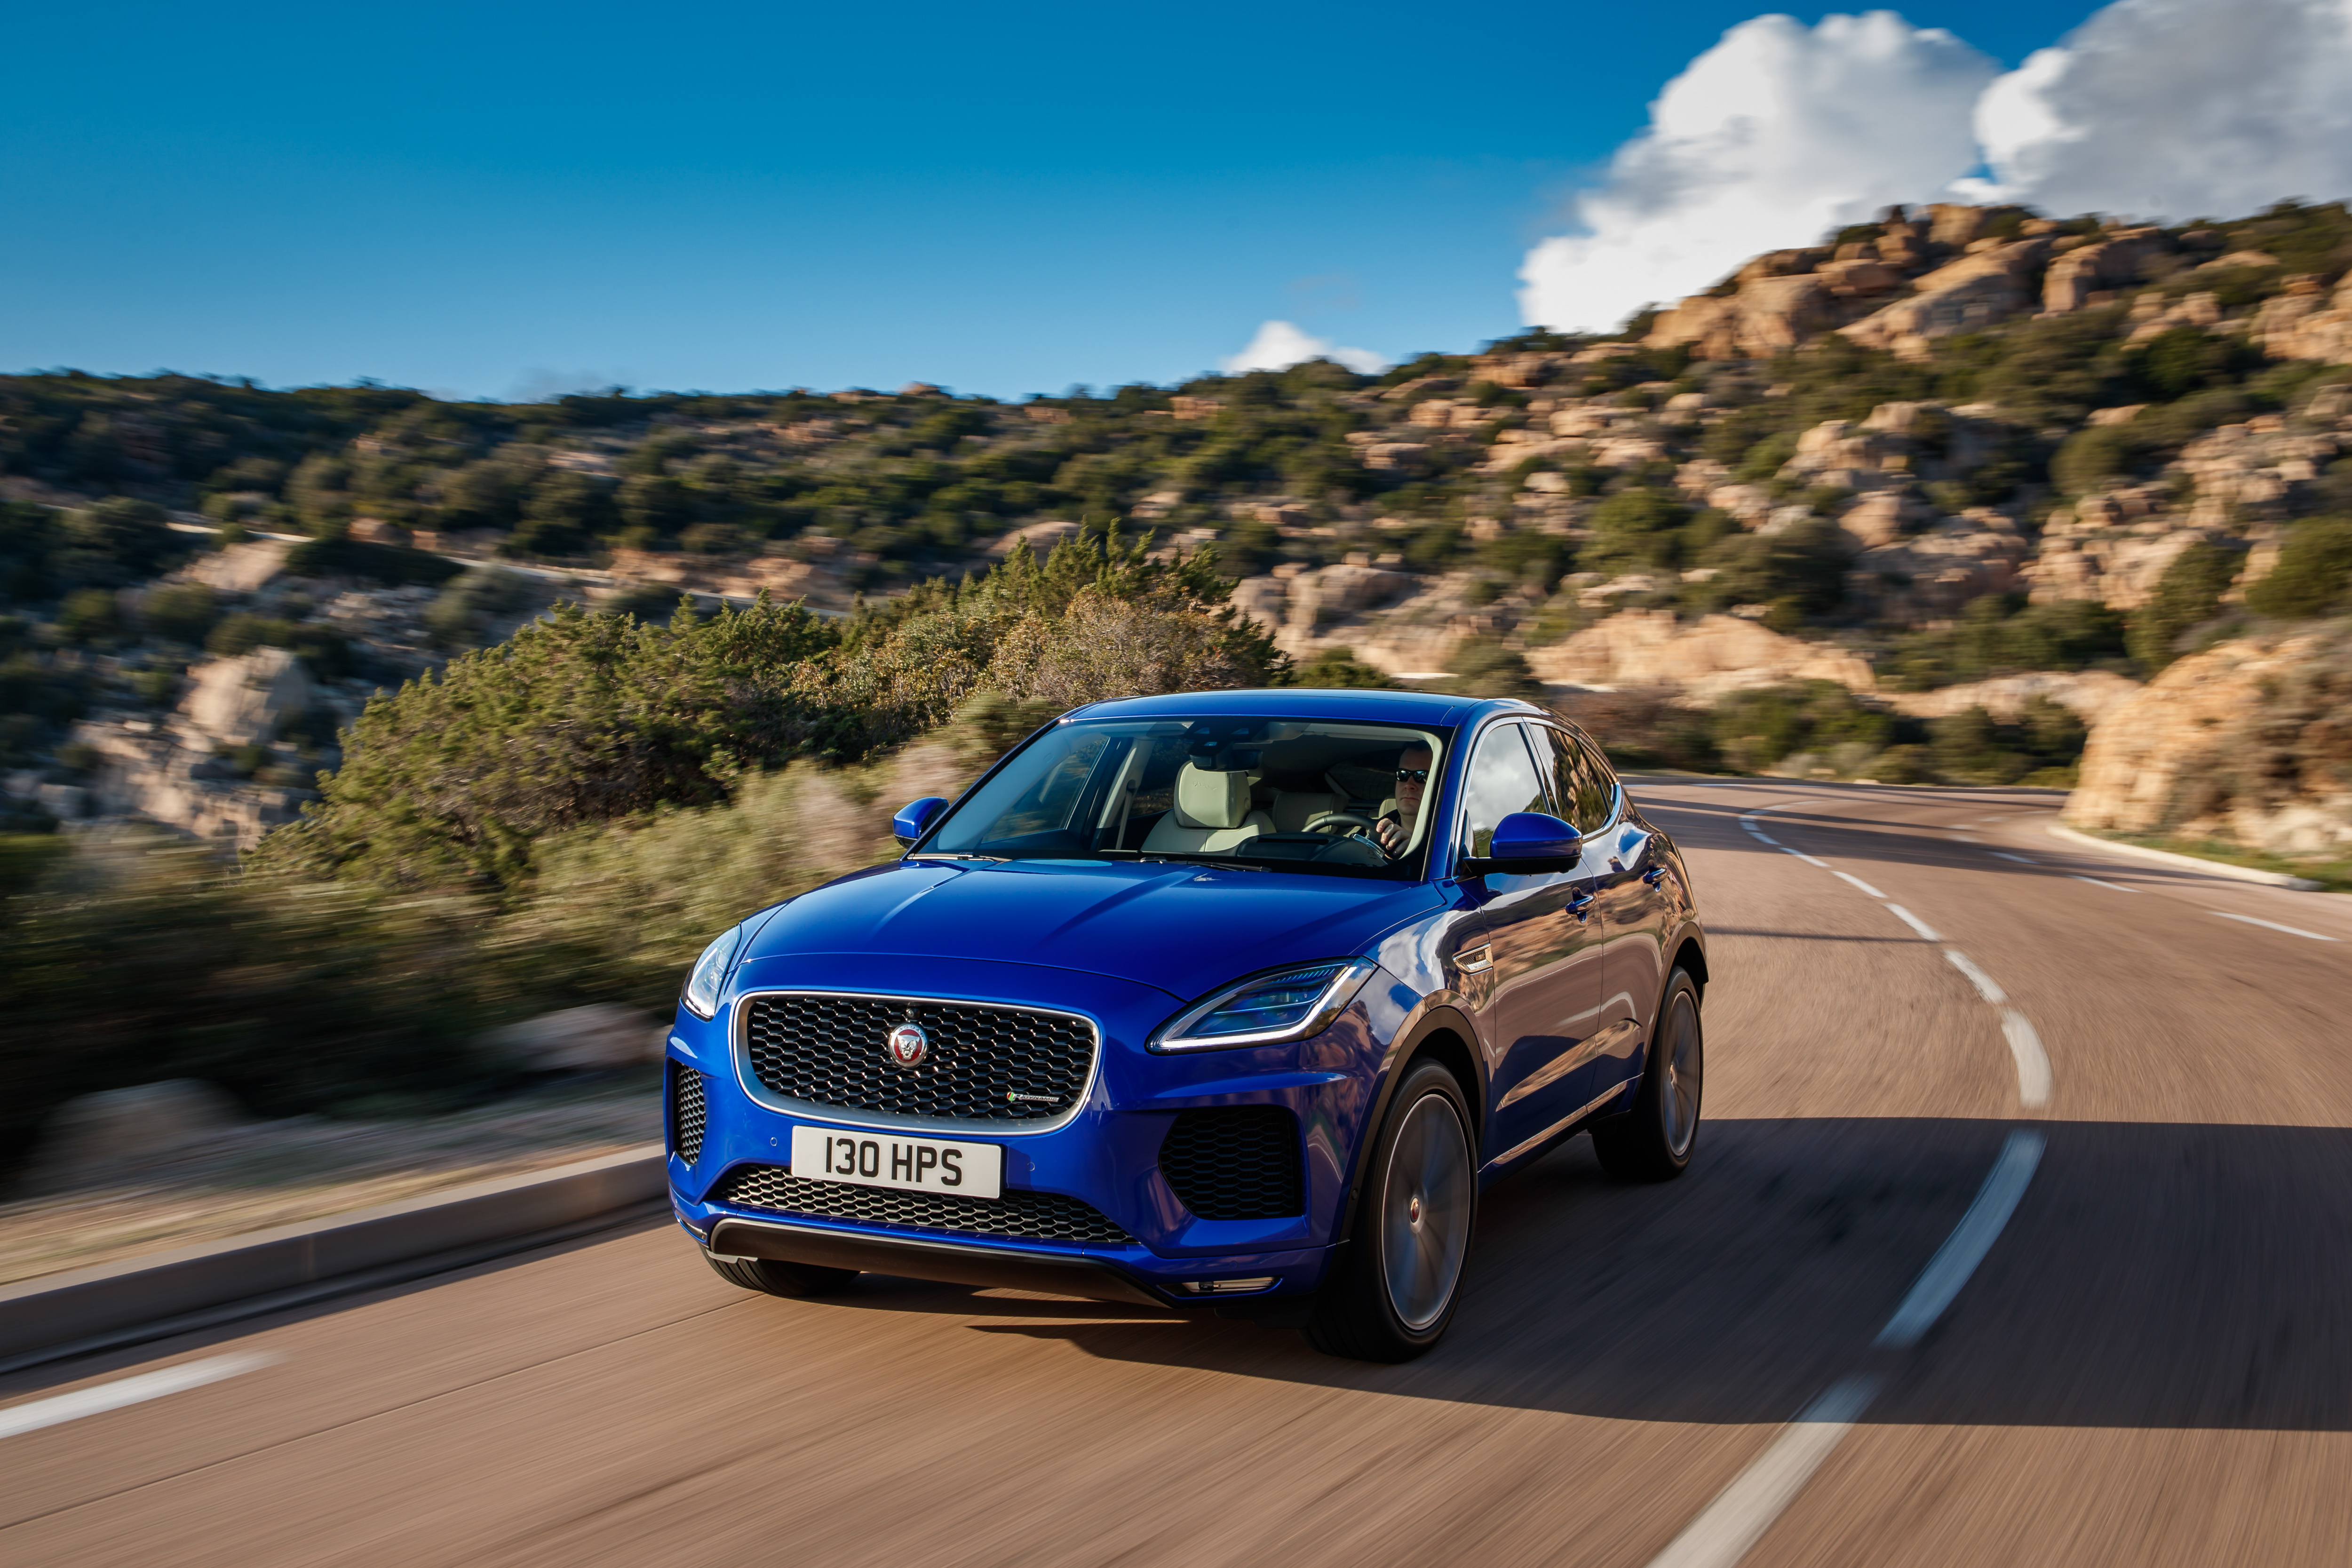 on as the brings with techradar pace inch jaguar has new touchscreen tech e news suv standard a customizable